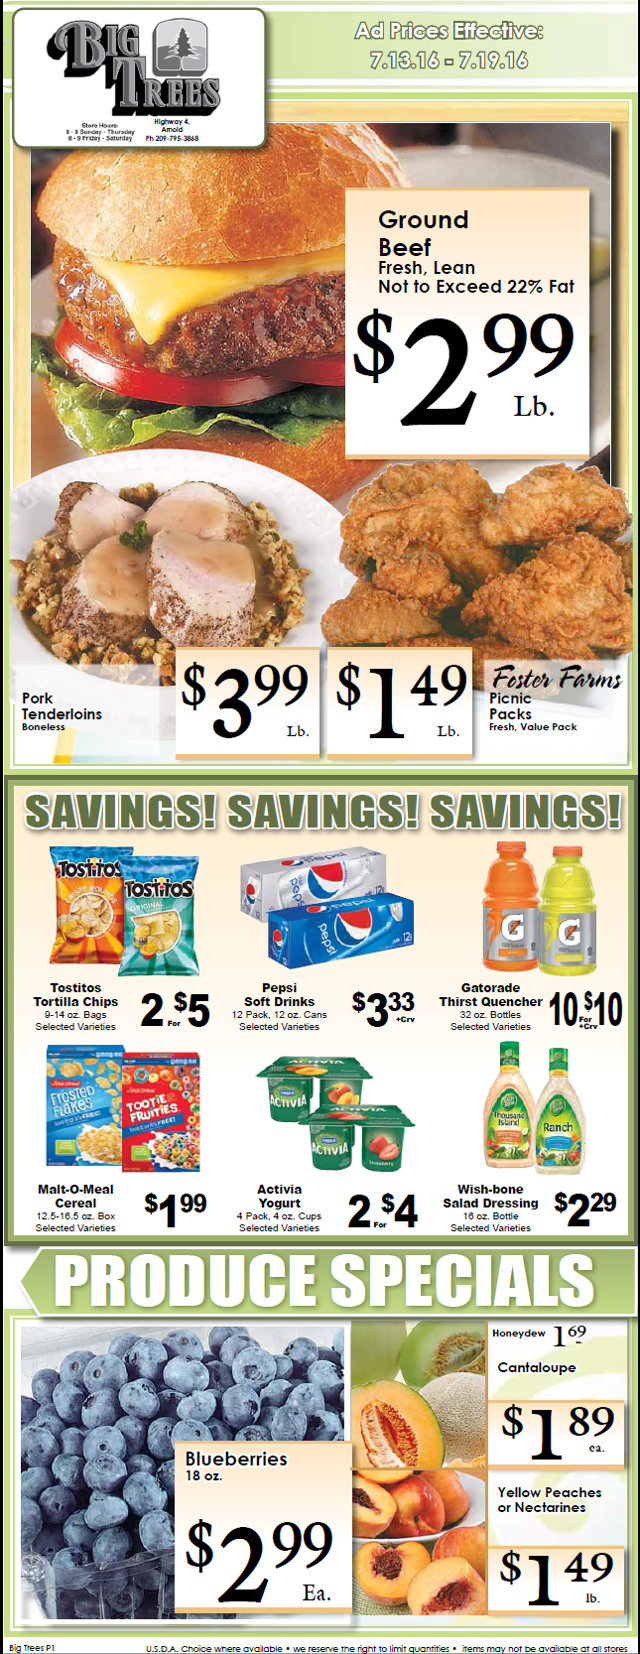 Big Trees Market Weekly Specials & Grocery Ad Through July 19th